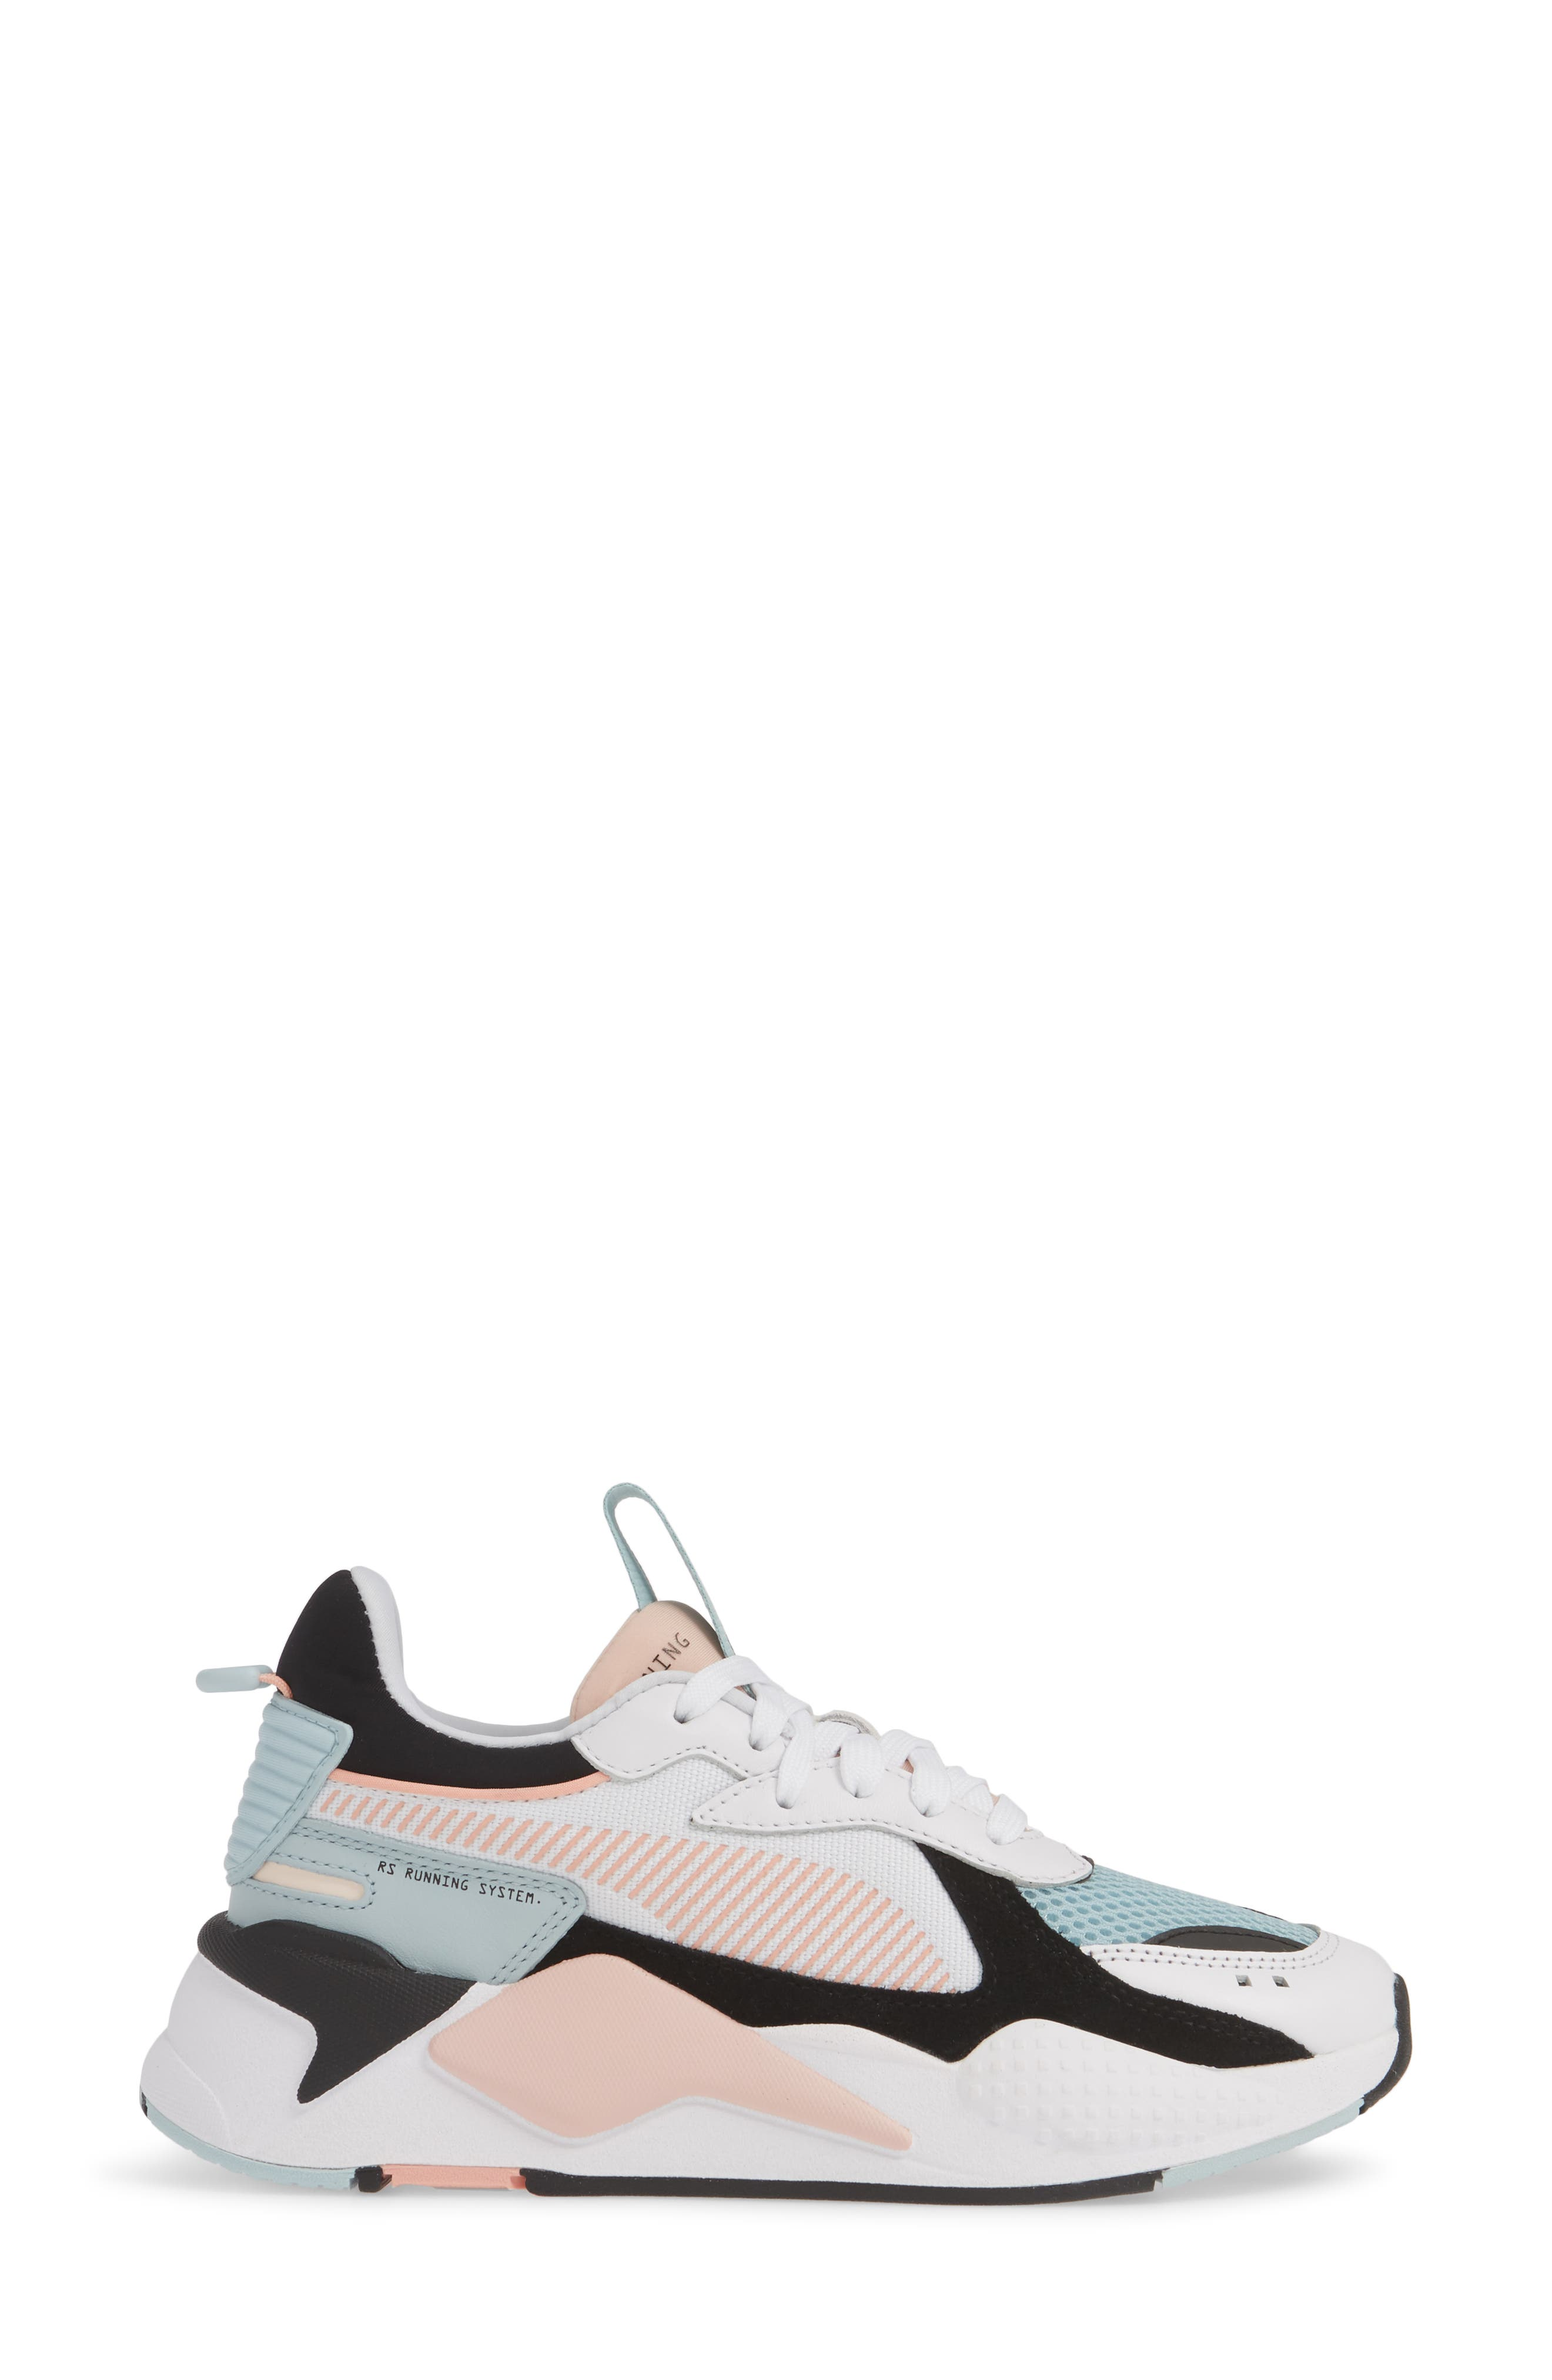 PUMA, RS-X Reinvention Sneaker, Alternate thumbnail 3, color, 100